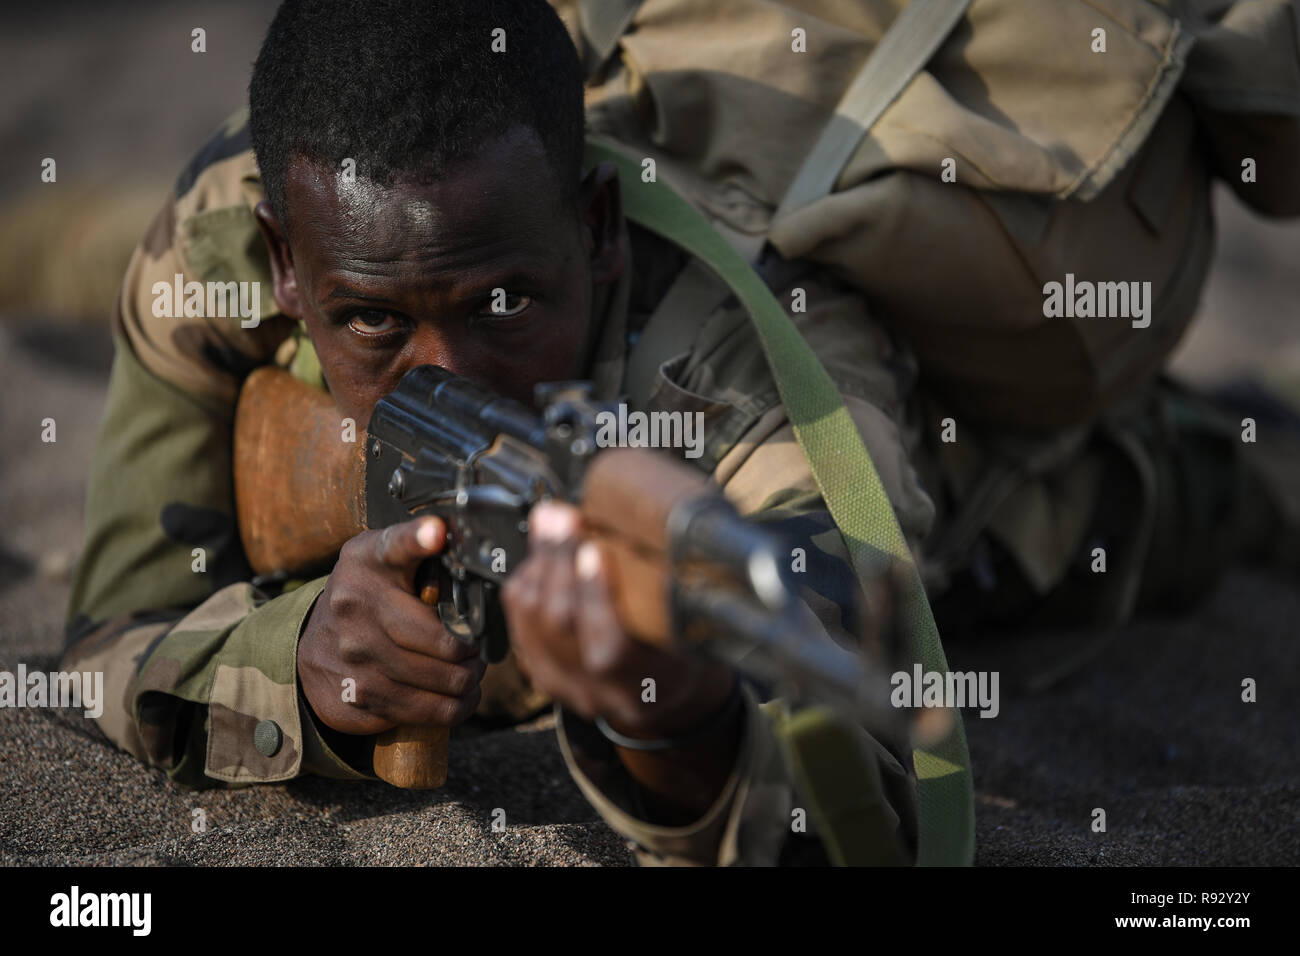 A Djiboutian soldier with the Rapid Intervention Battalion during infantry tactics and procedures training taught by U.S. Forces December 18, 2018 near Djibouti City, Djibouti. - Stock Image